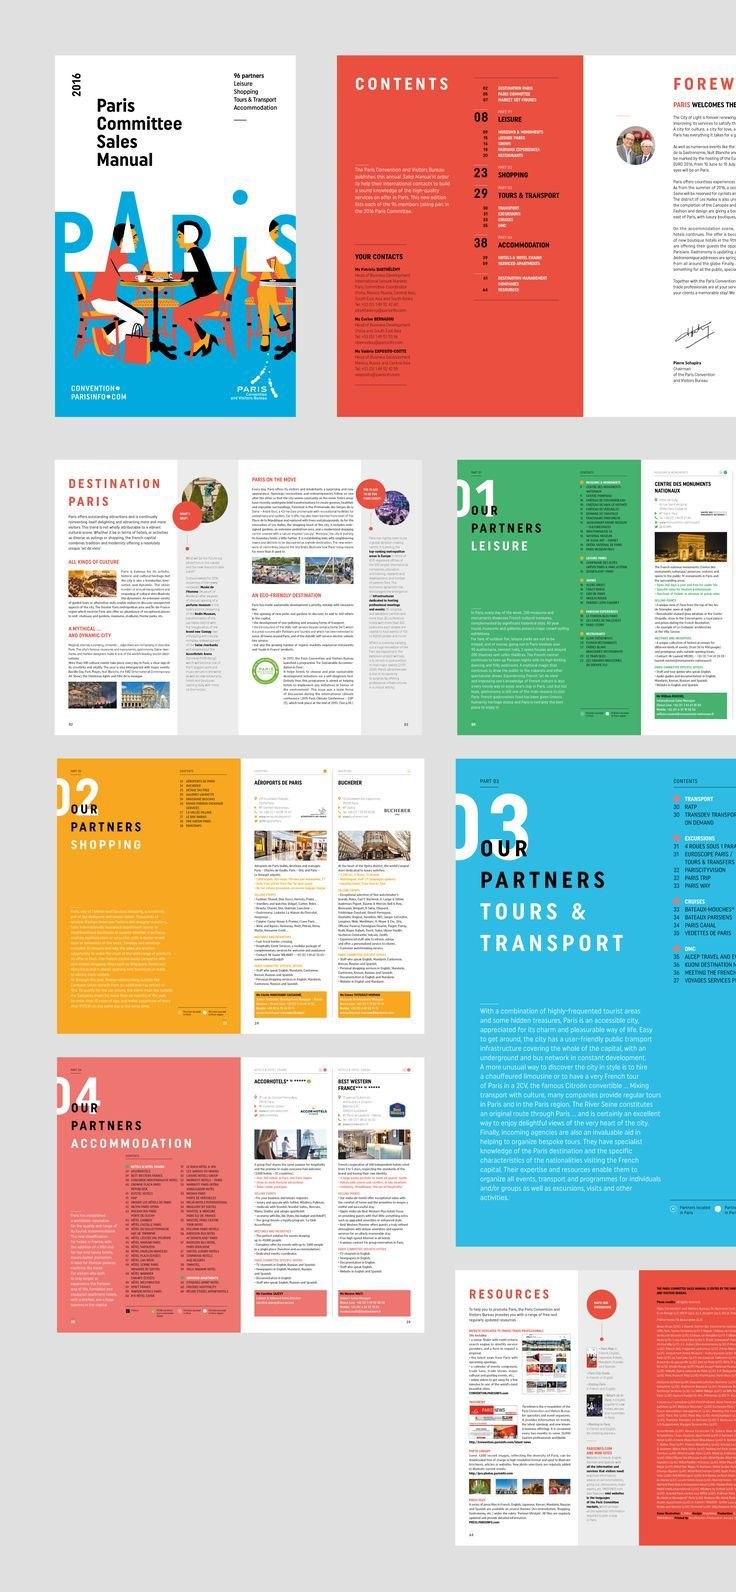 sales-magazine-layout-design.jpg (1950×4220)